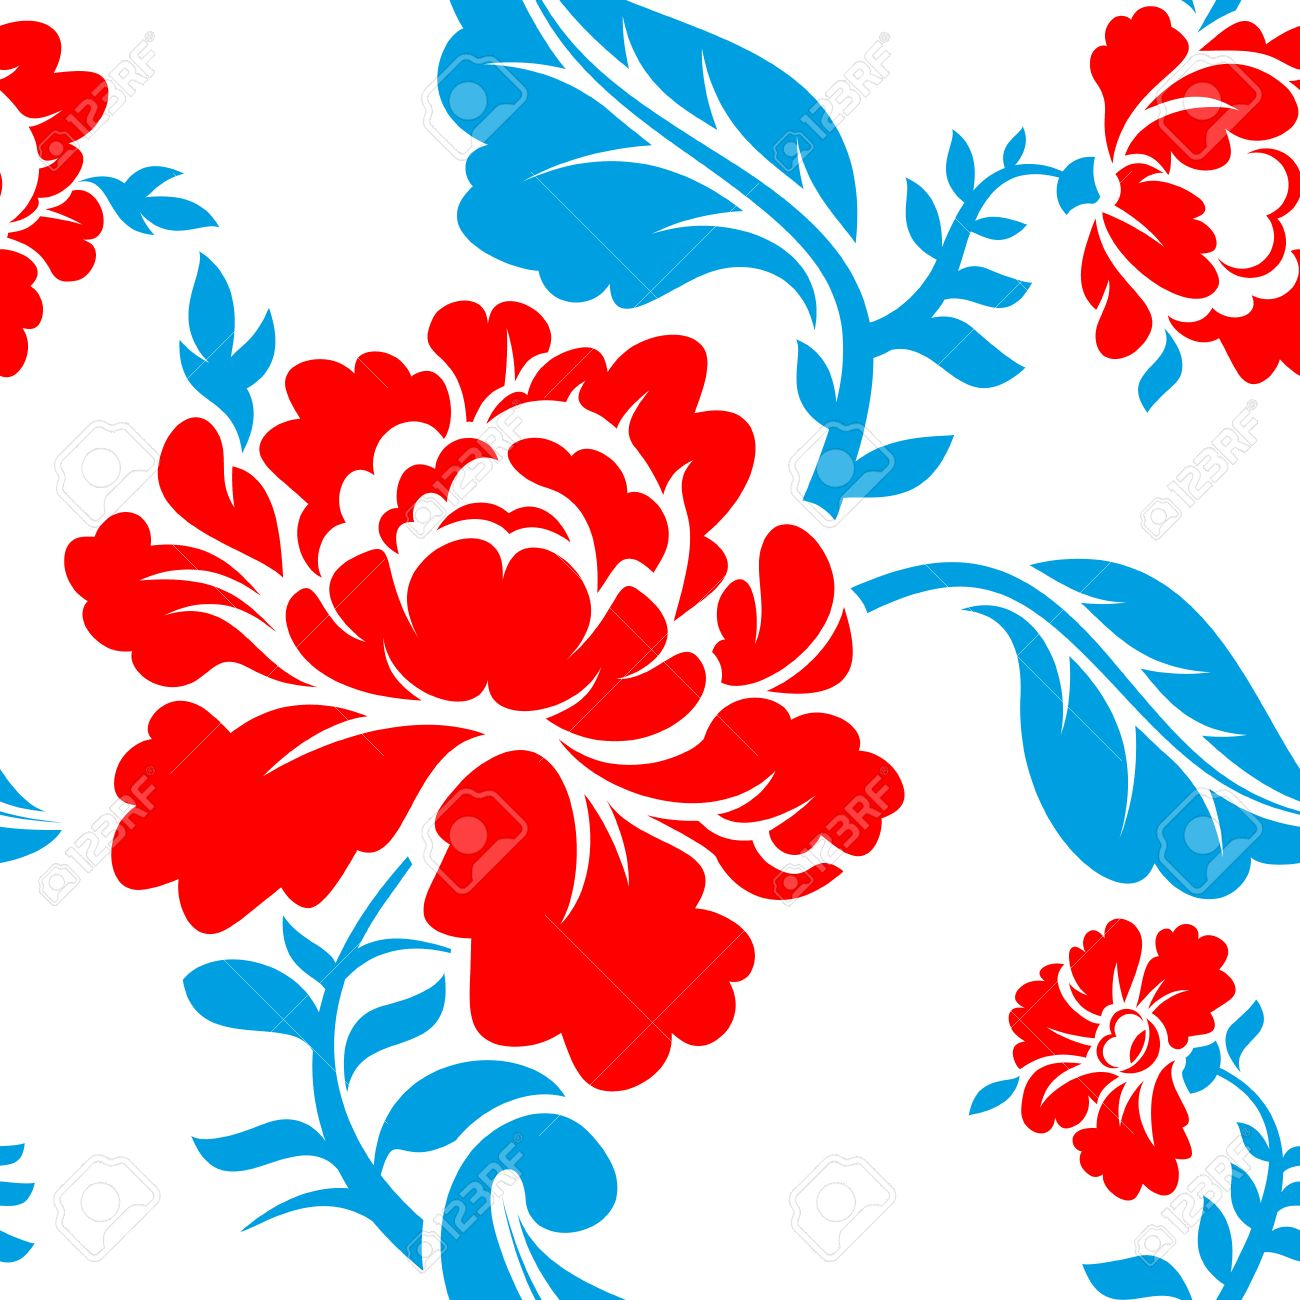 Russian national flower pattern colors of russia flag tricolor russian national flower pattern colors of russia flag tricolor red blue and mightylinksfo